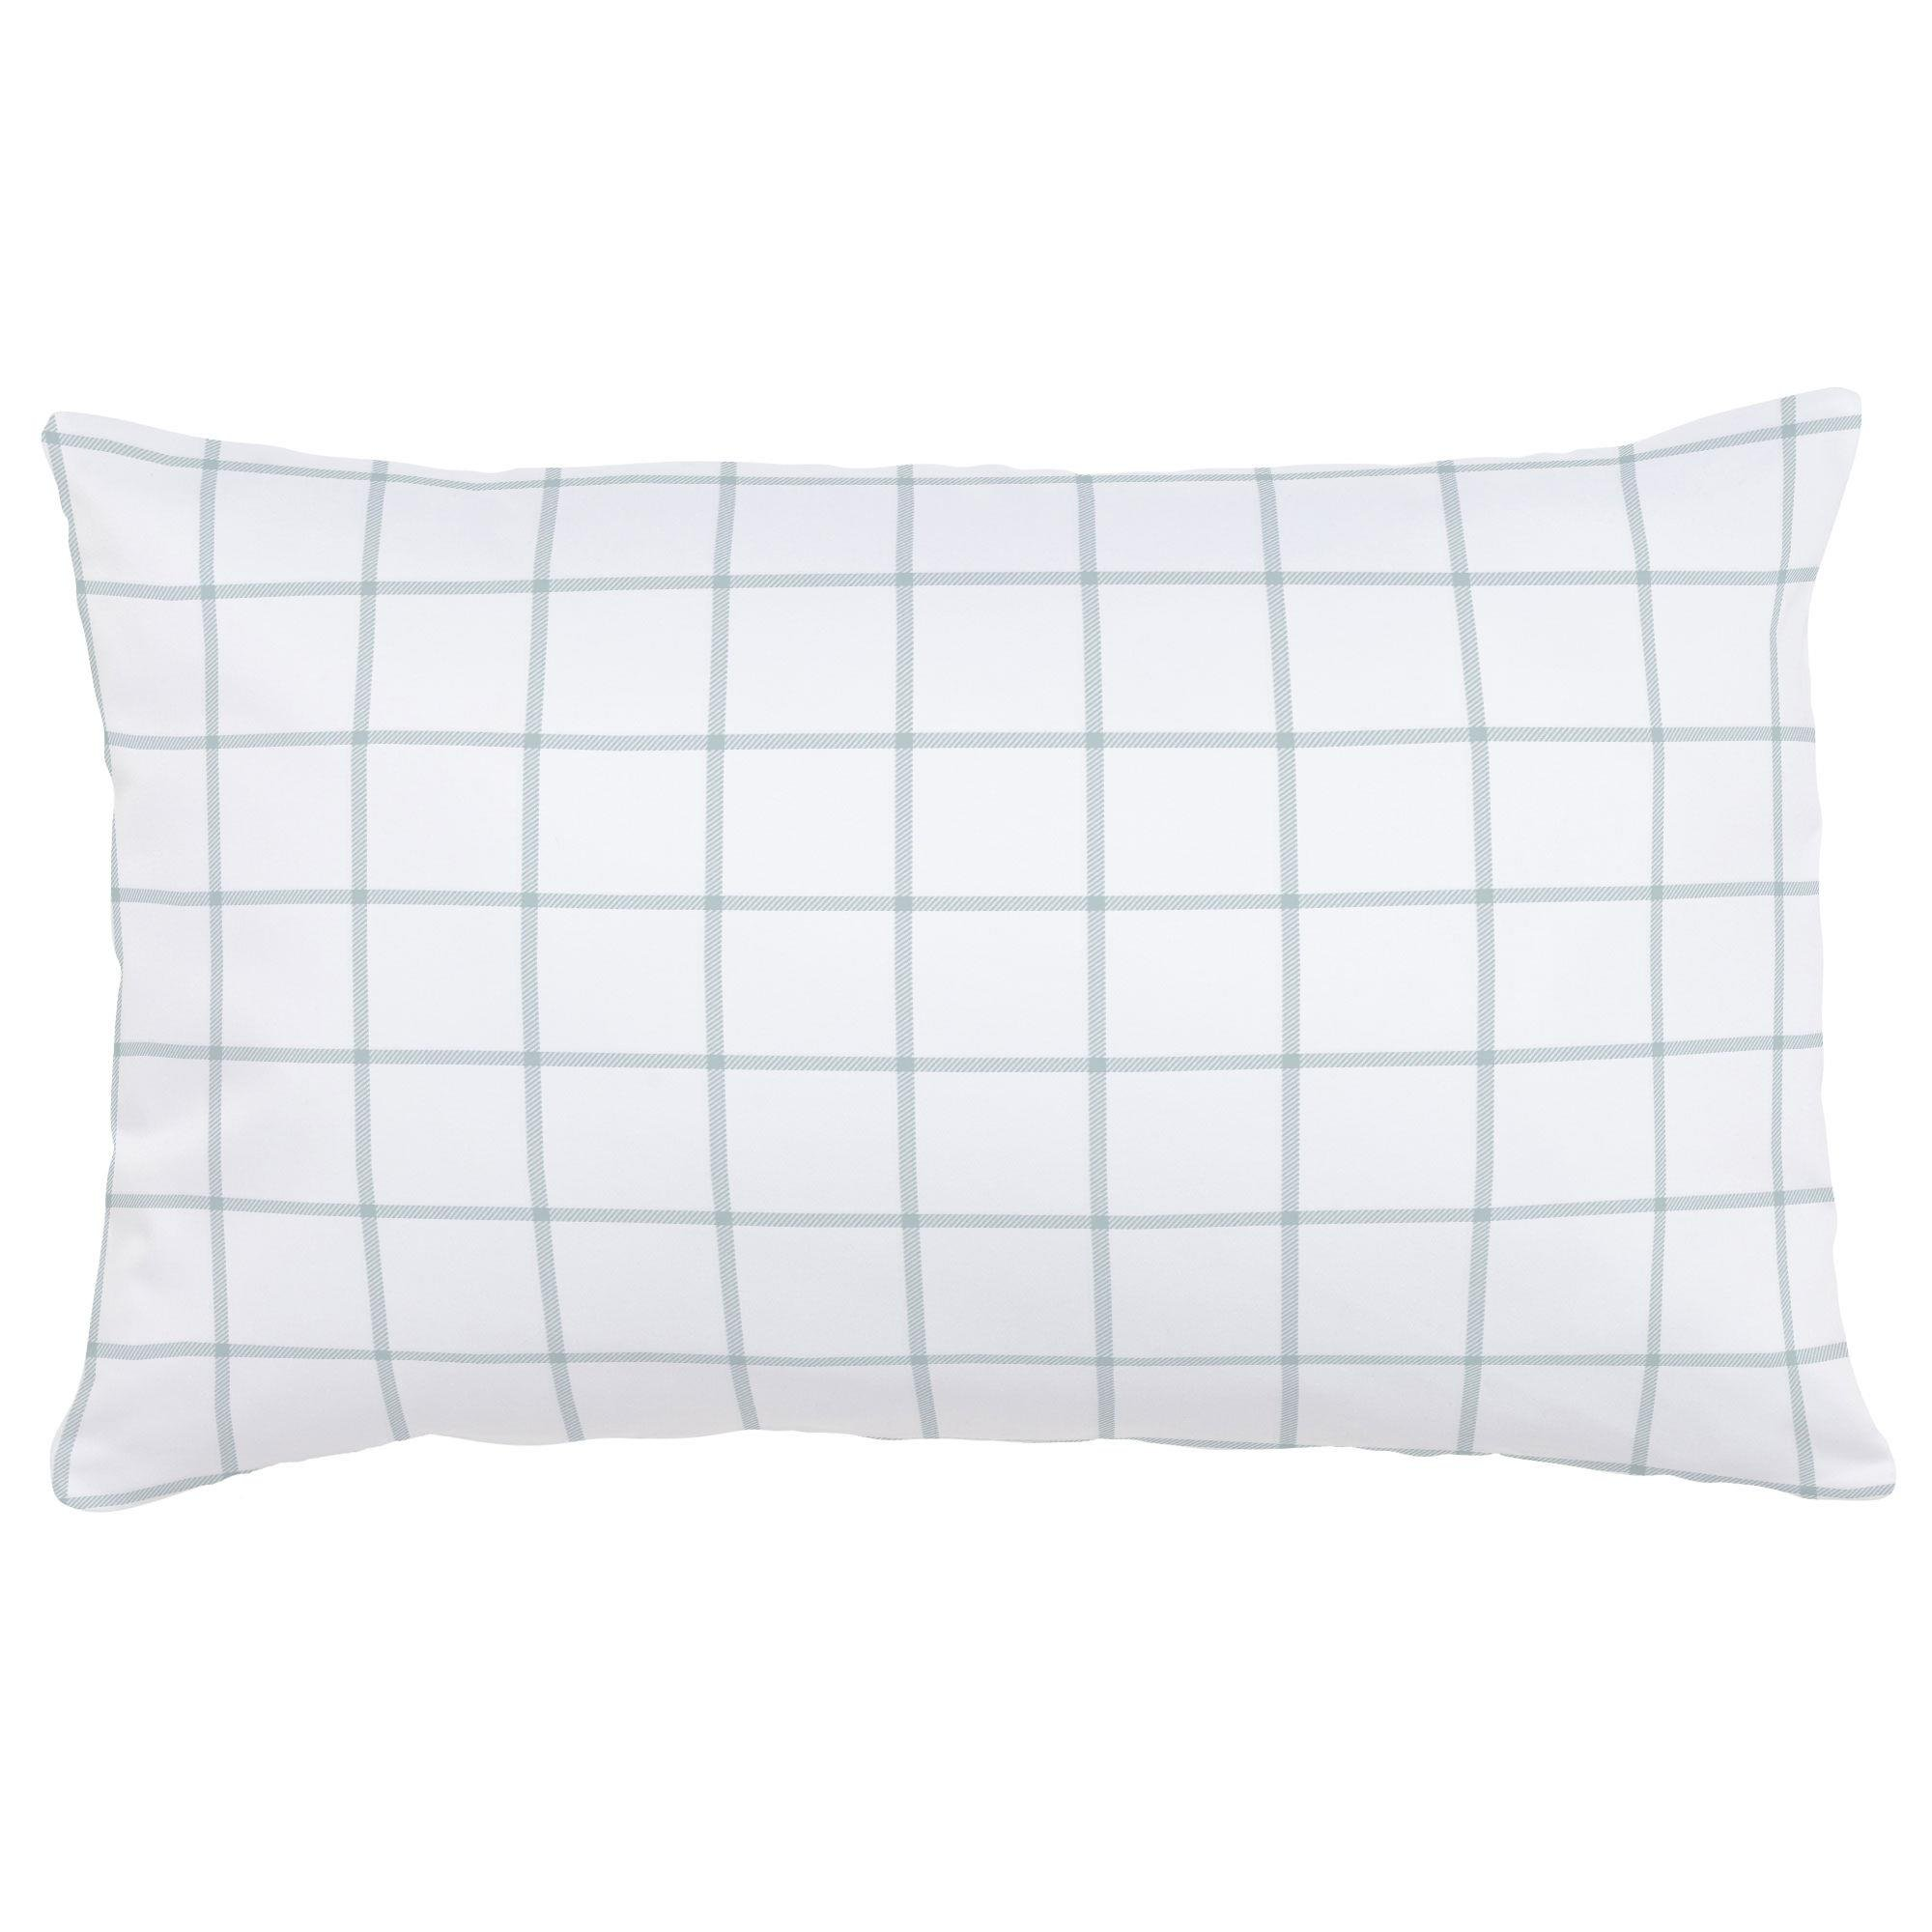 Carousel Designs Robins Egg Blue Windowpane Lumbar Pillow - Organic 100% Cotton Lumbar Pillow Cover + Insert - Made in The USA